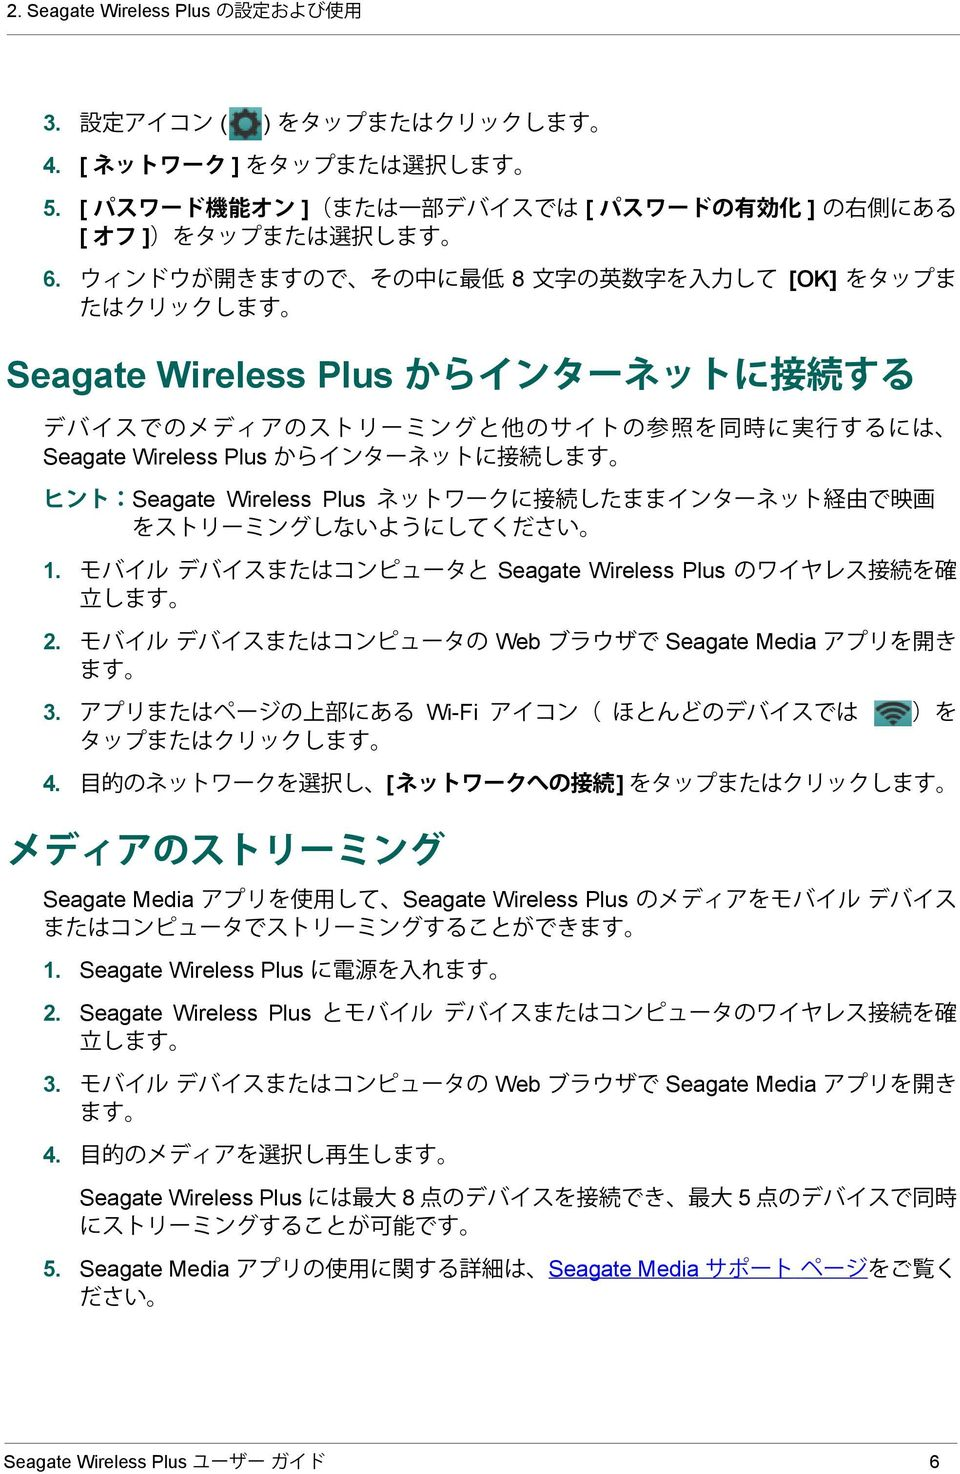 Seagate Wireless Plus 2. Web Seagate Media 3. Wi-Fi 4. [] Seagate Media Seagate Wireless Plus 1.